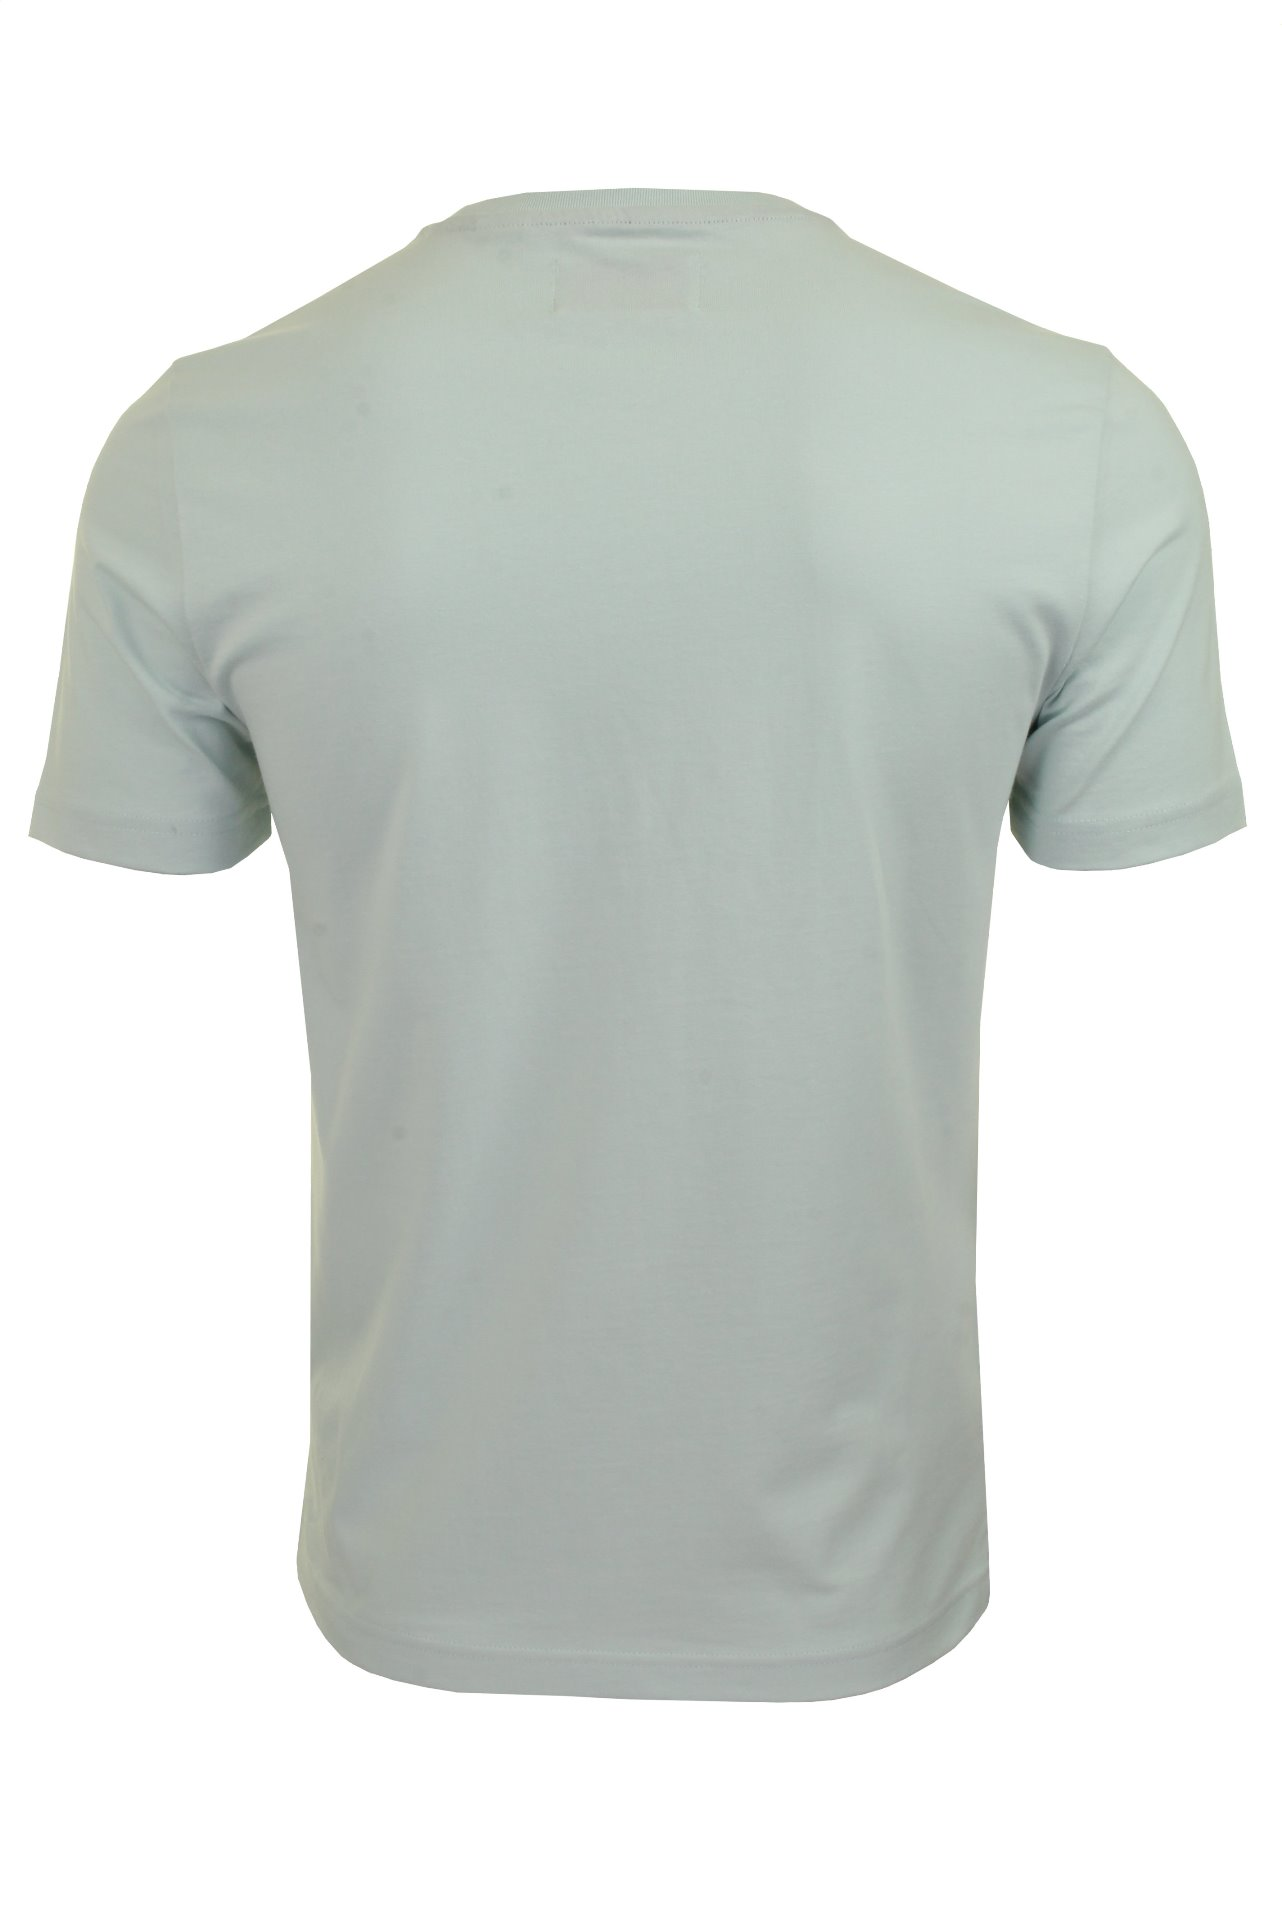 Original-Penguin-Mens-T-Shirt-039-Pin-Point-Embroidered-039-Short-Sleeved thumbnail 20